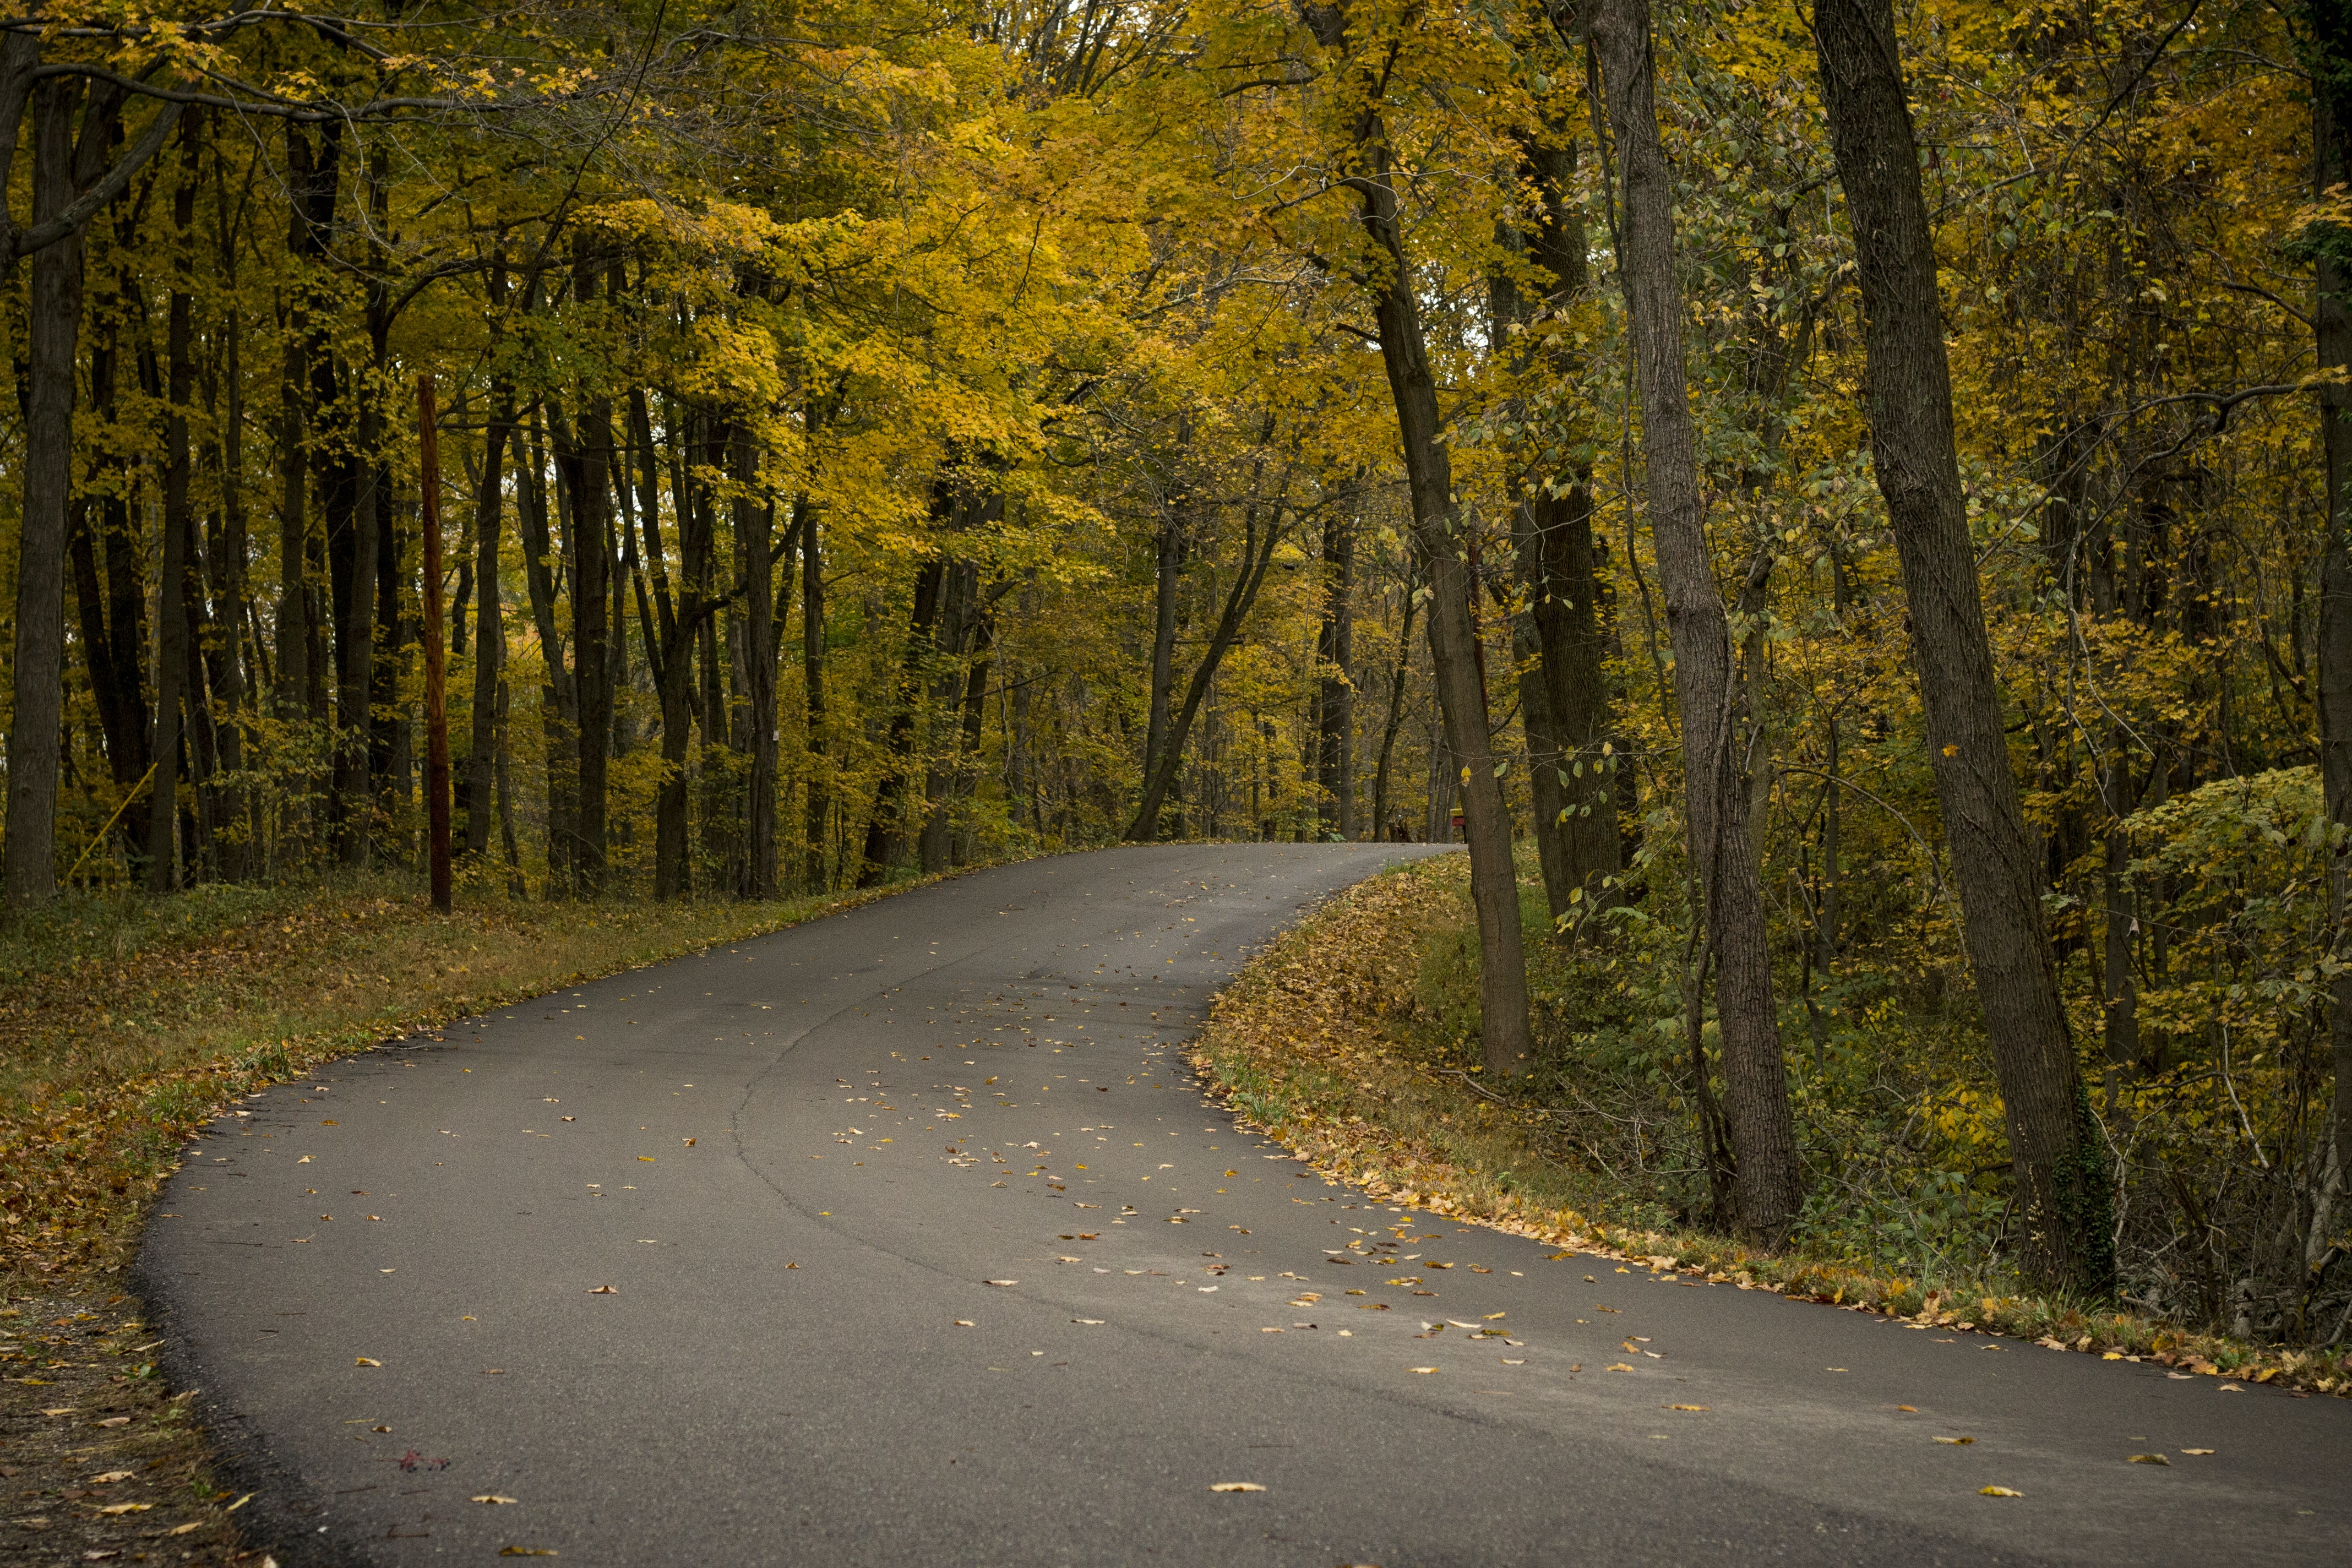 gray concrete road surrounded by trees